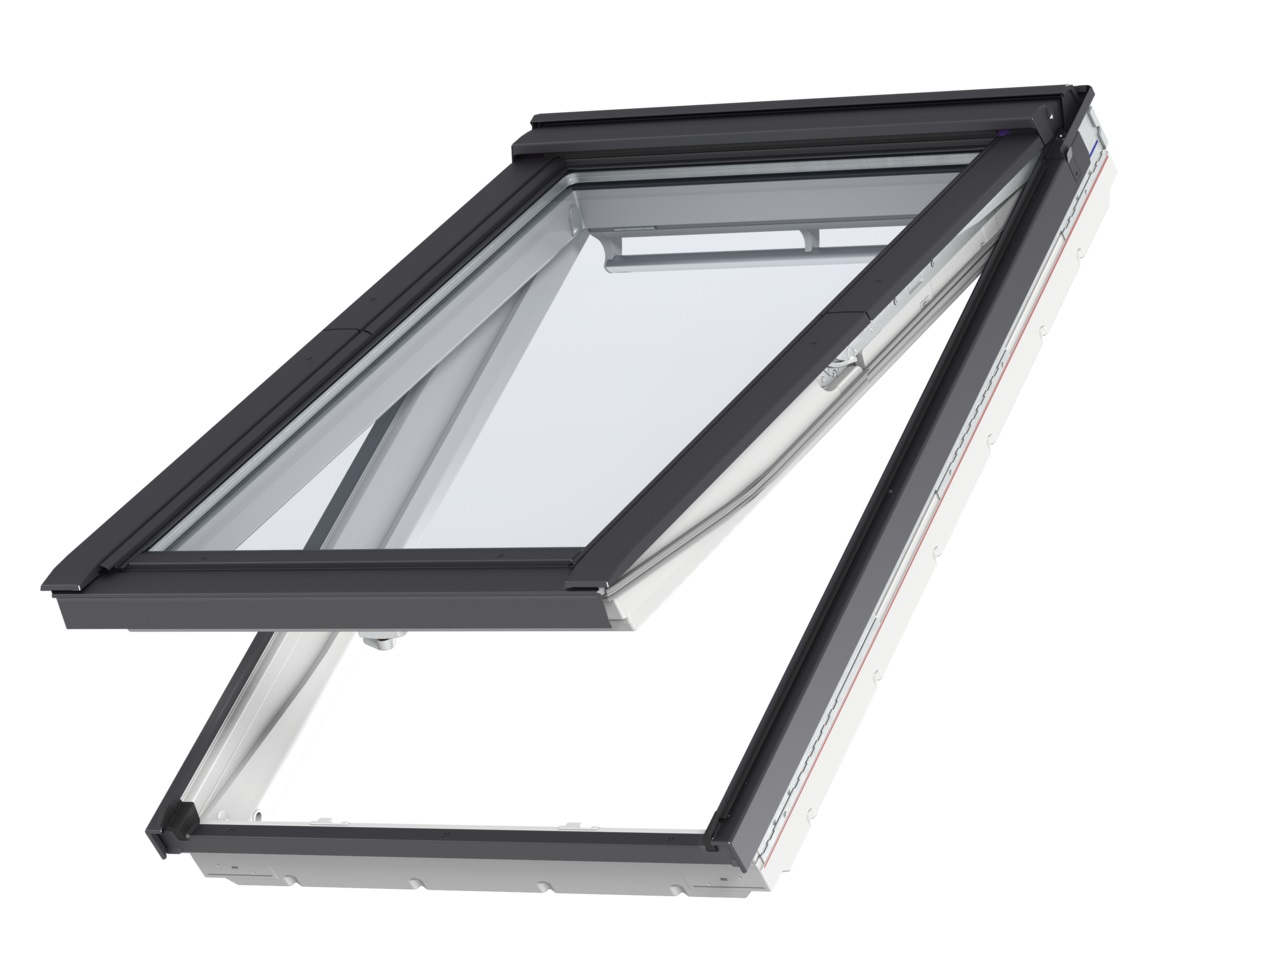 klapp schwingfenster velux gpu thermo hoch schwingfenster kunststoff skylight ebay. Black Bedroom Furniture Sets. Home Design Ideas